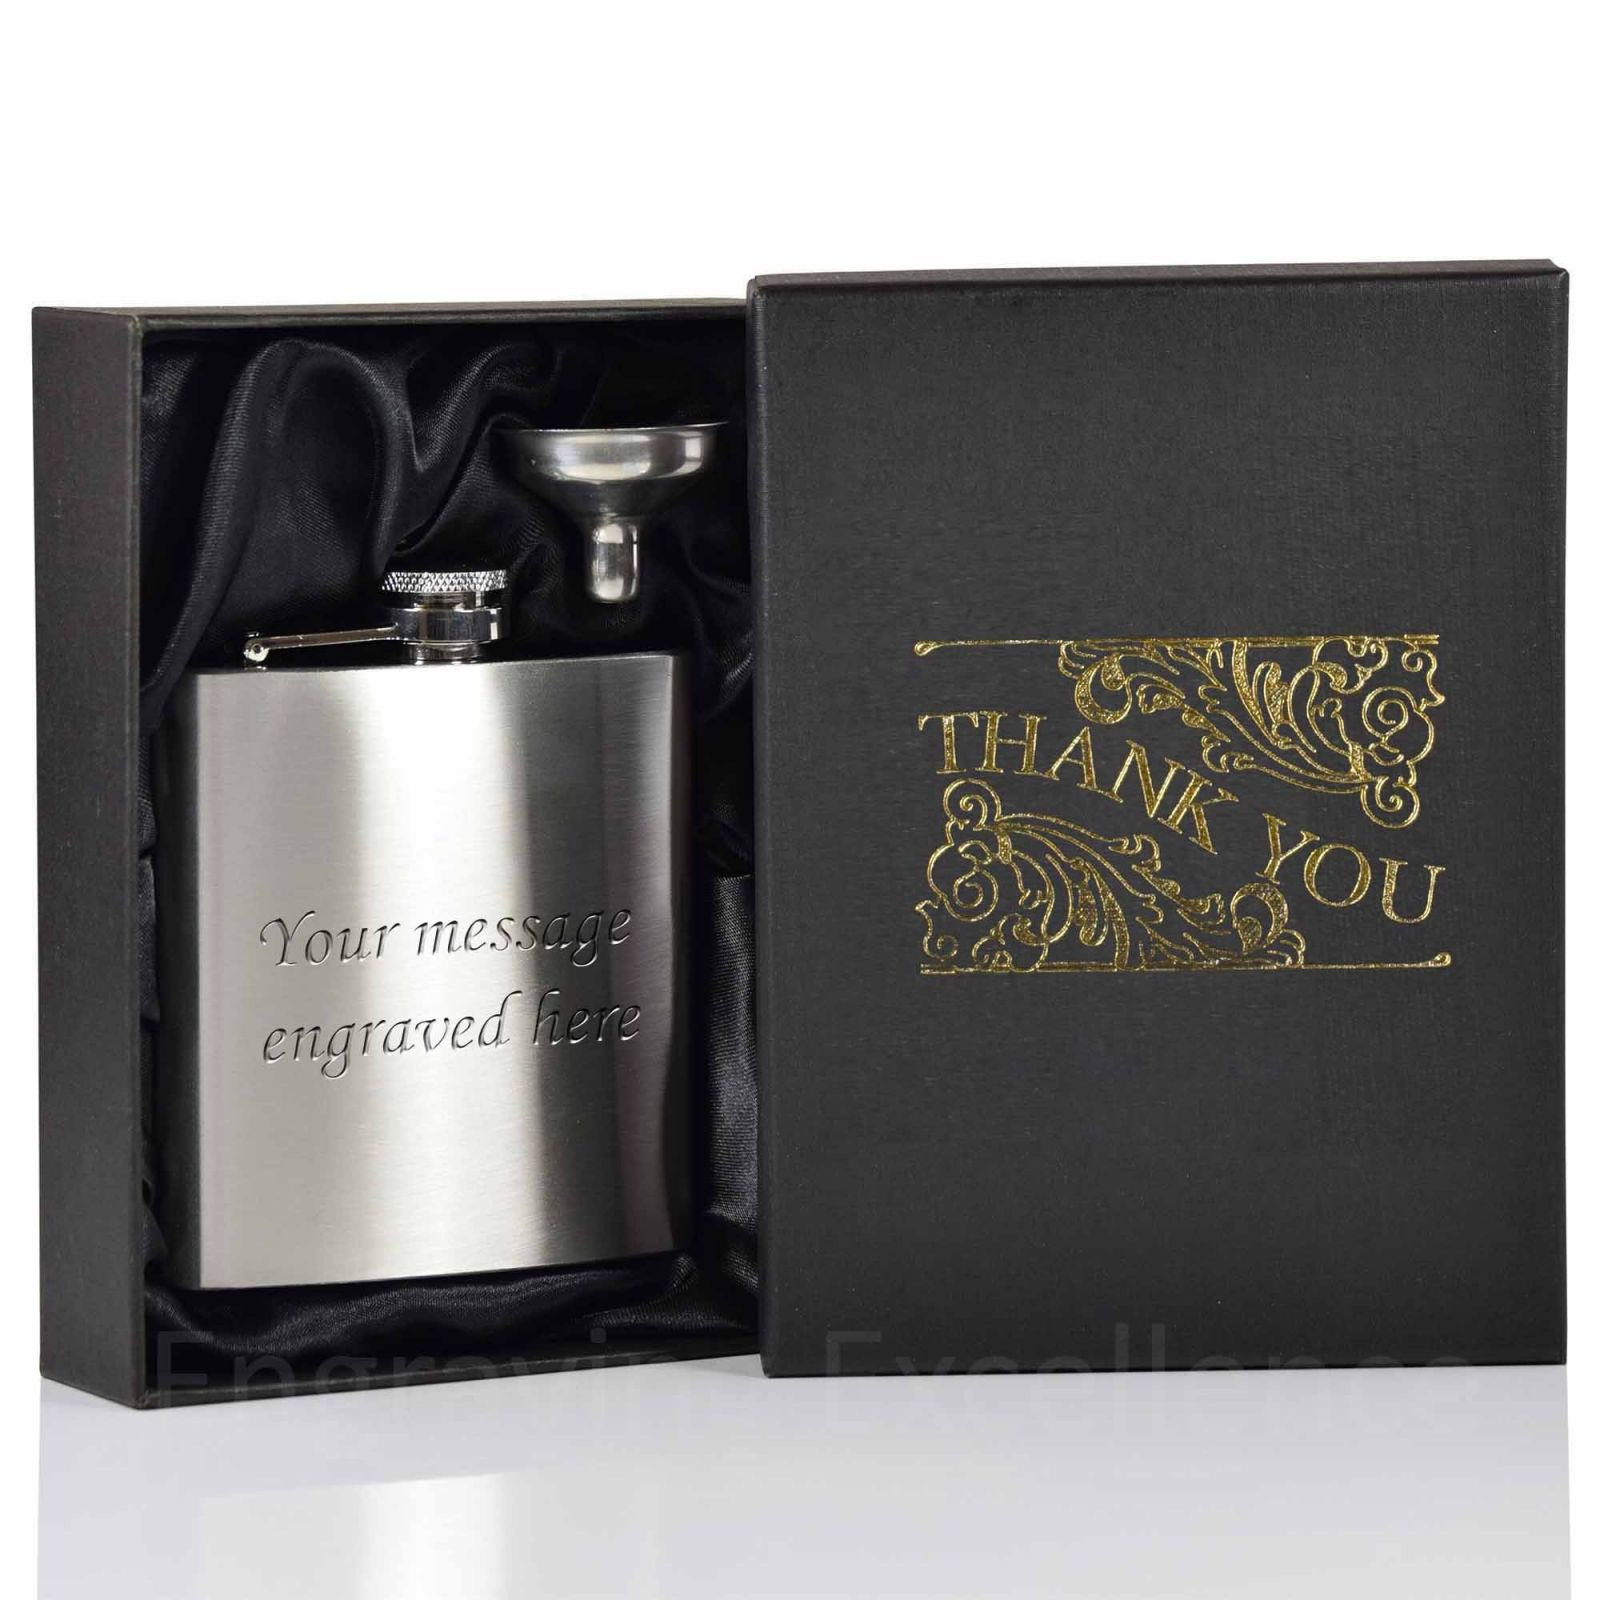 6oz Hip Flask with funnel and Gift Box - Thank You printed lid - duplicated